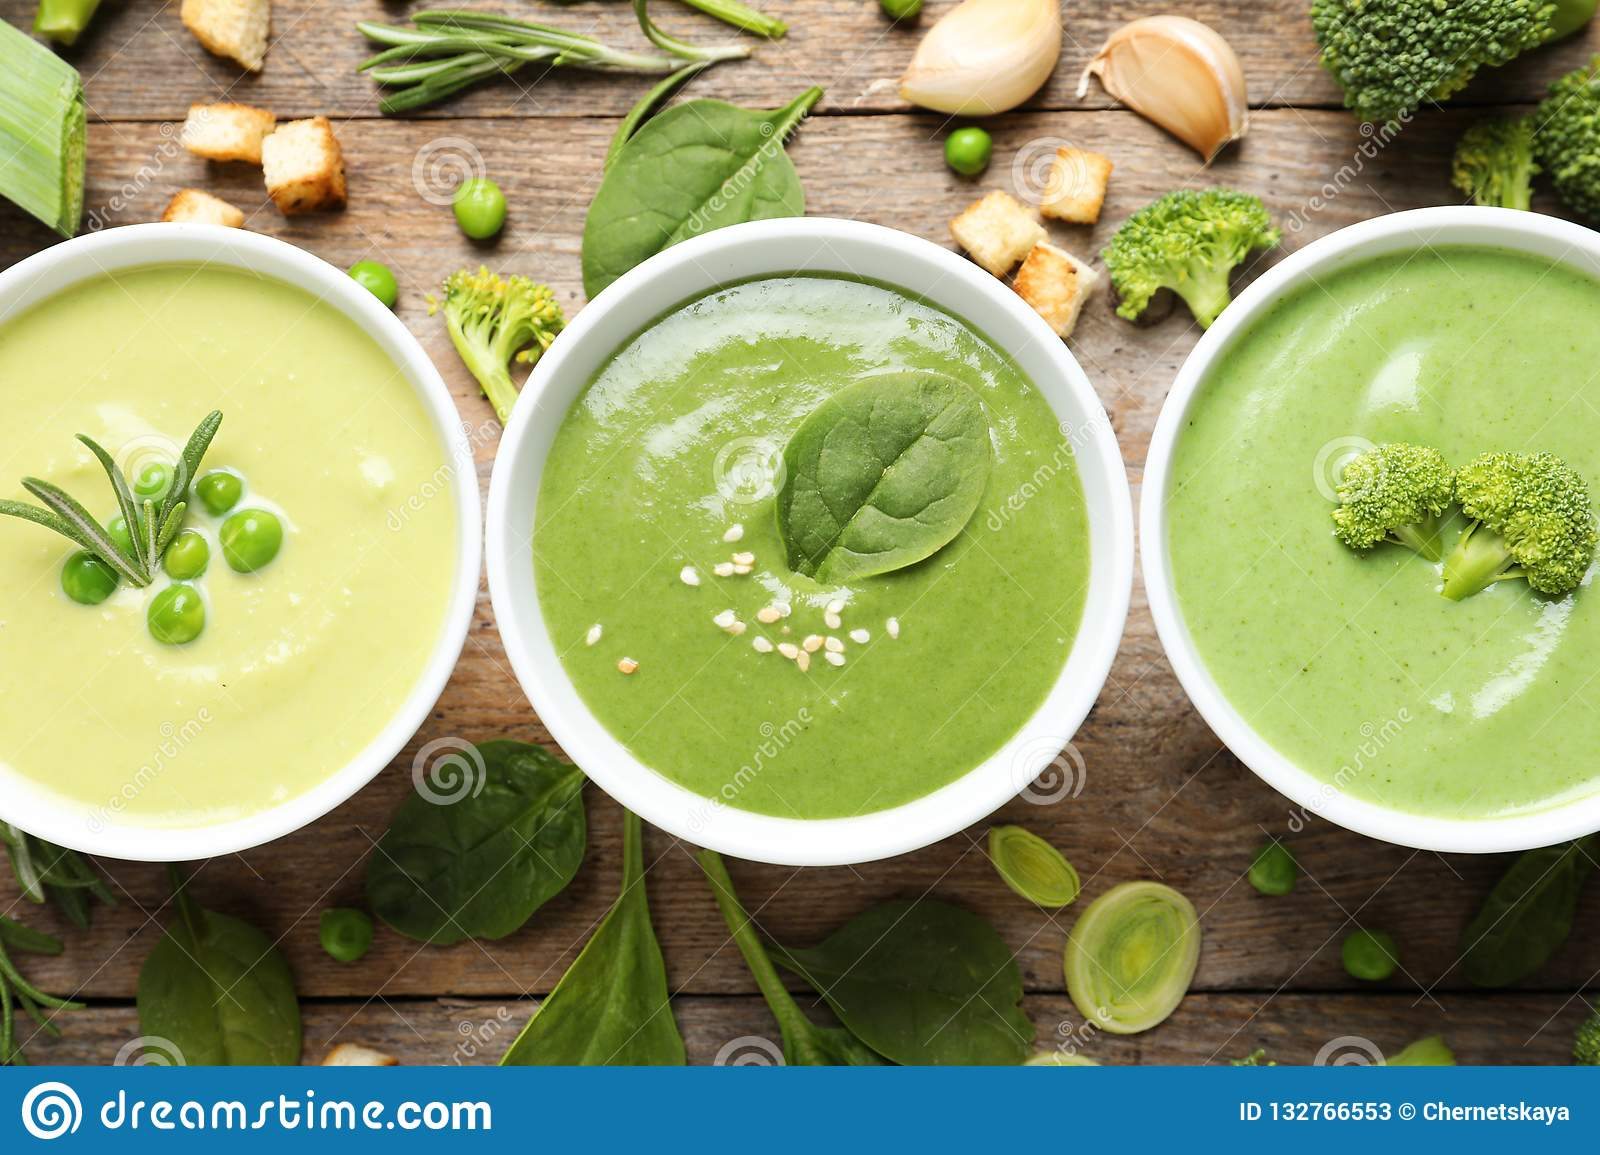 Flat lay composition with different fresh vegetable detox soups made of green peas, broccoli and spinach in dishes